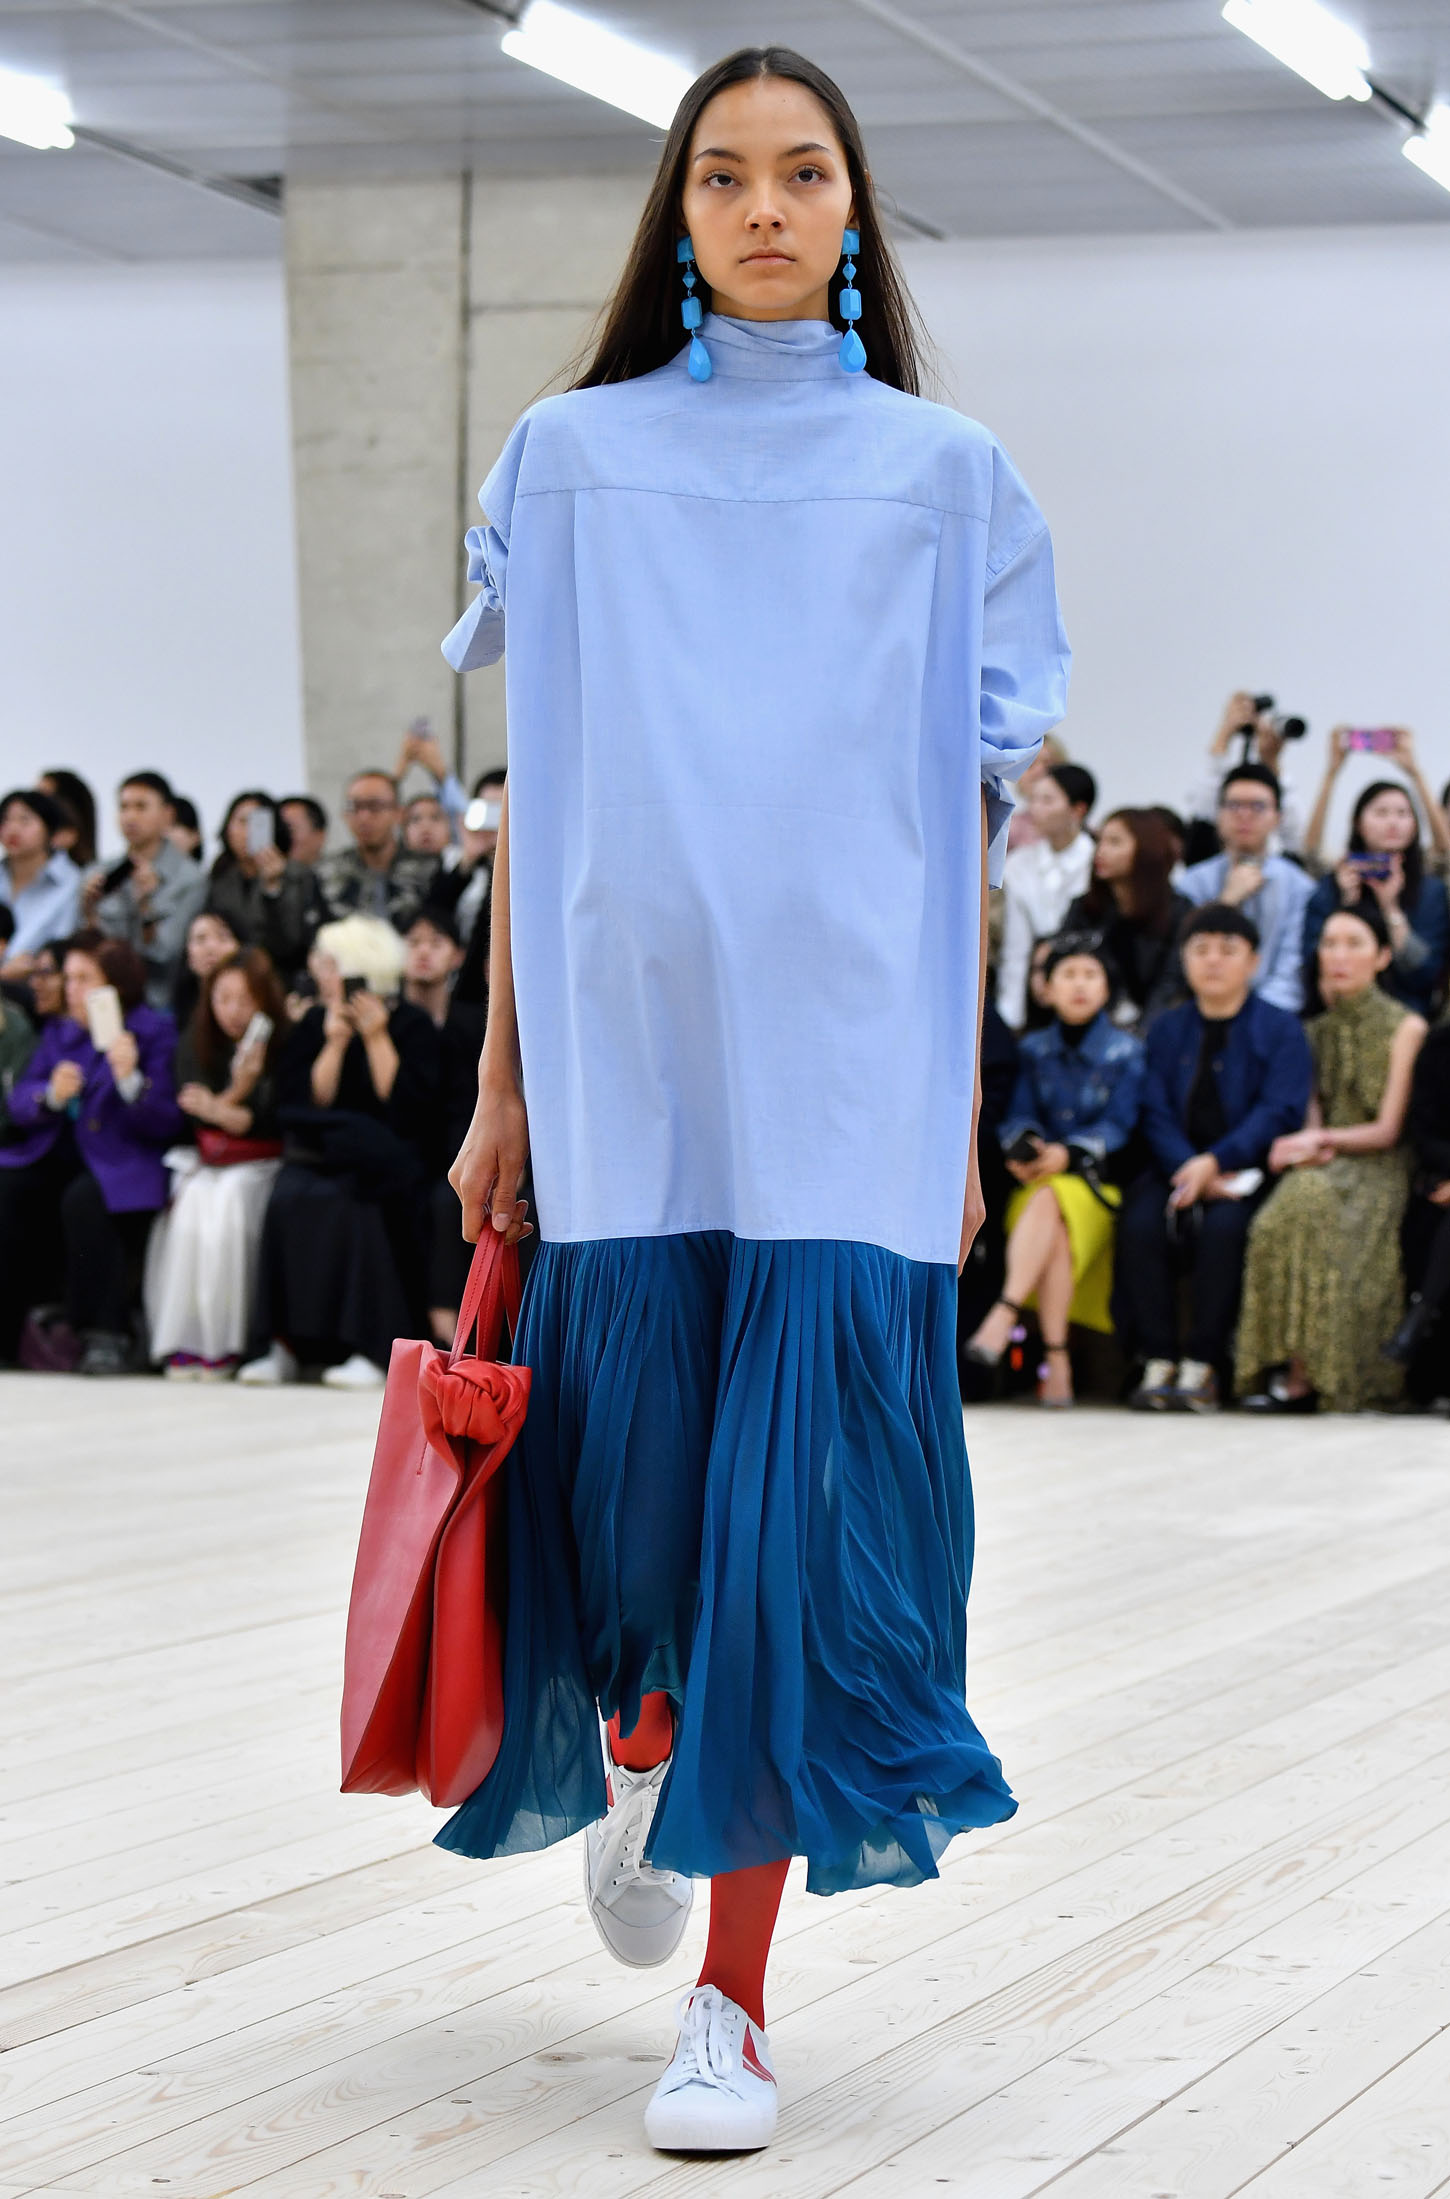 PARIS, FRANCE - OCTOBER 02:  A model walks the runway during the Celine show as part of the Paris Fashion Week Womenswear Spring/Summer 2017 on October 2, 2016 in Paris, France.  (Photo by Pascal Le Segretain/Getty Images)